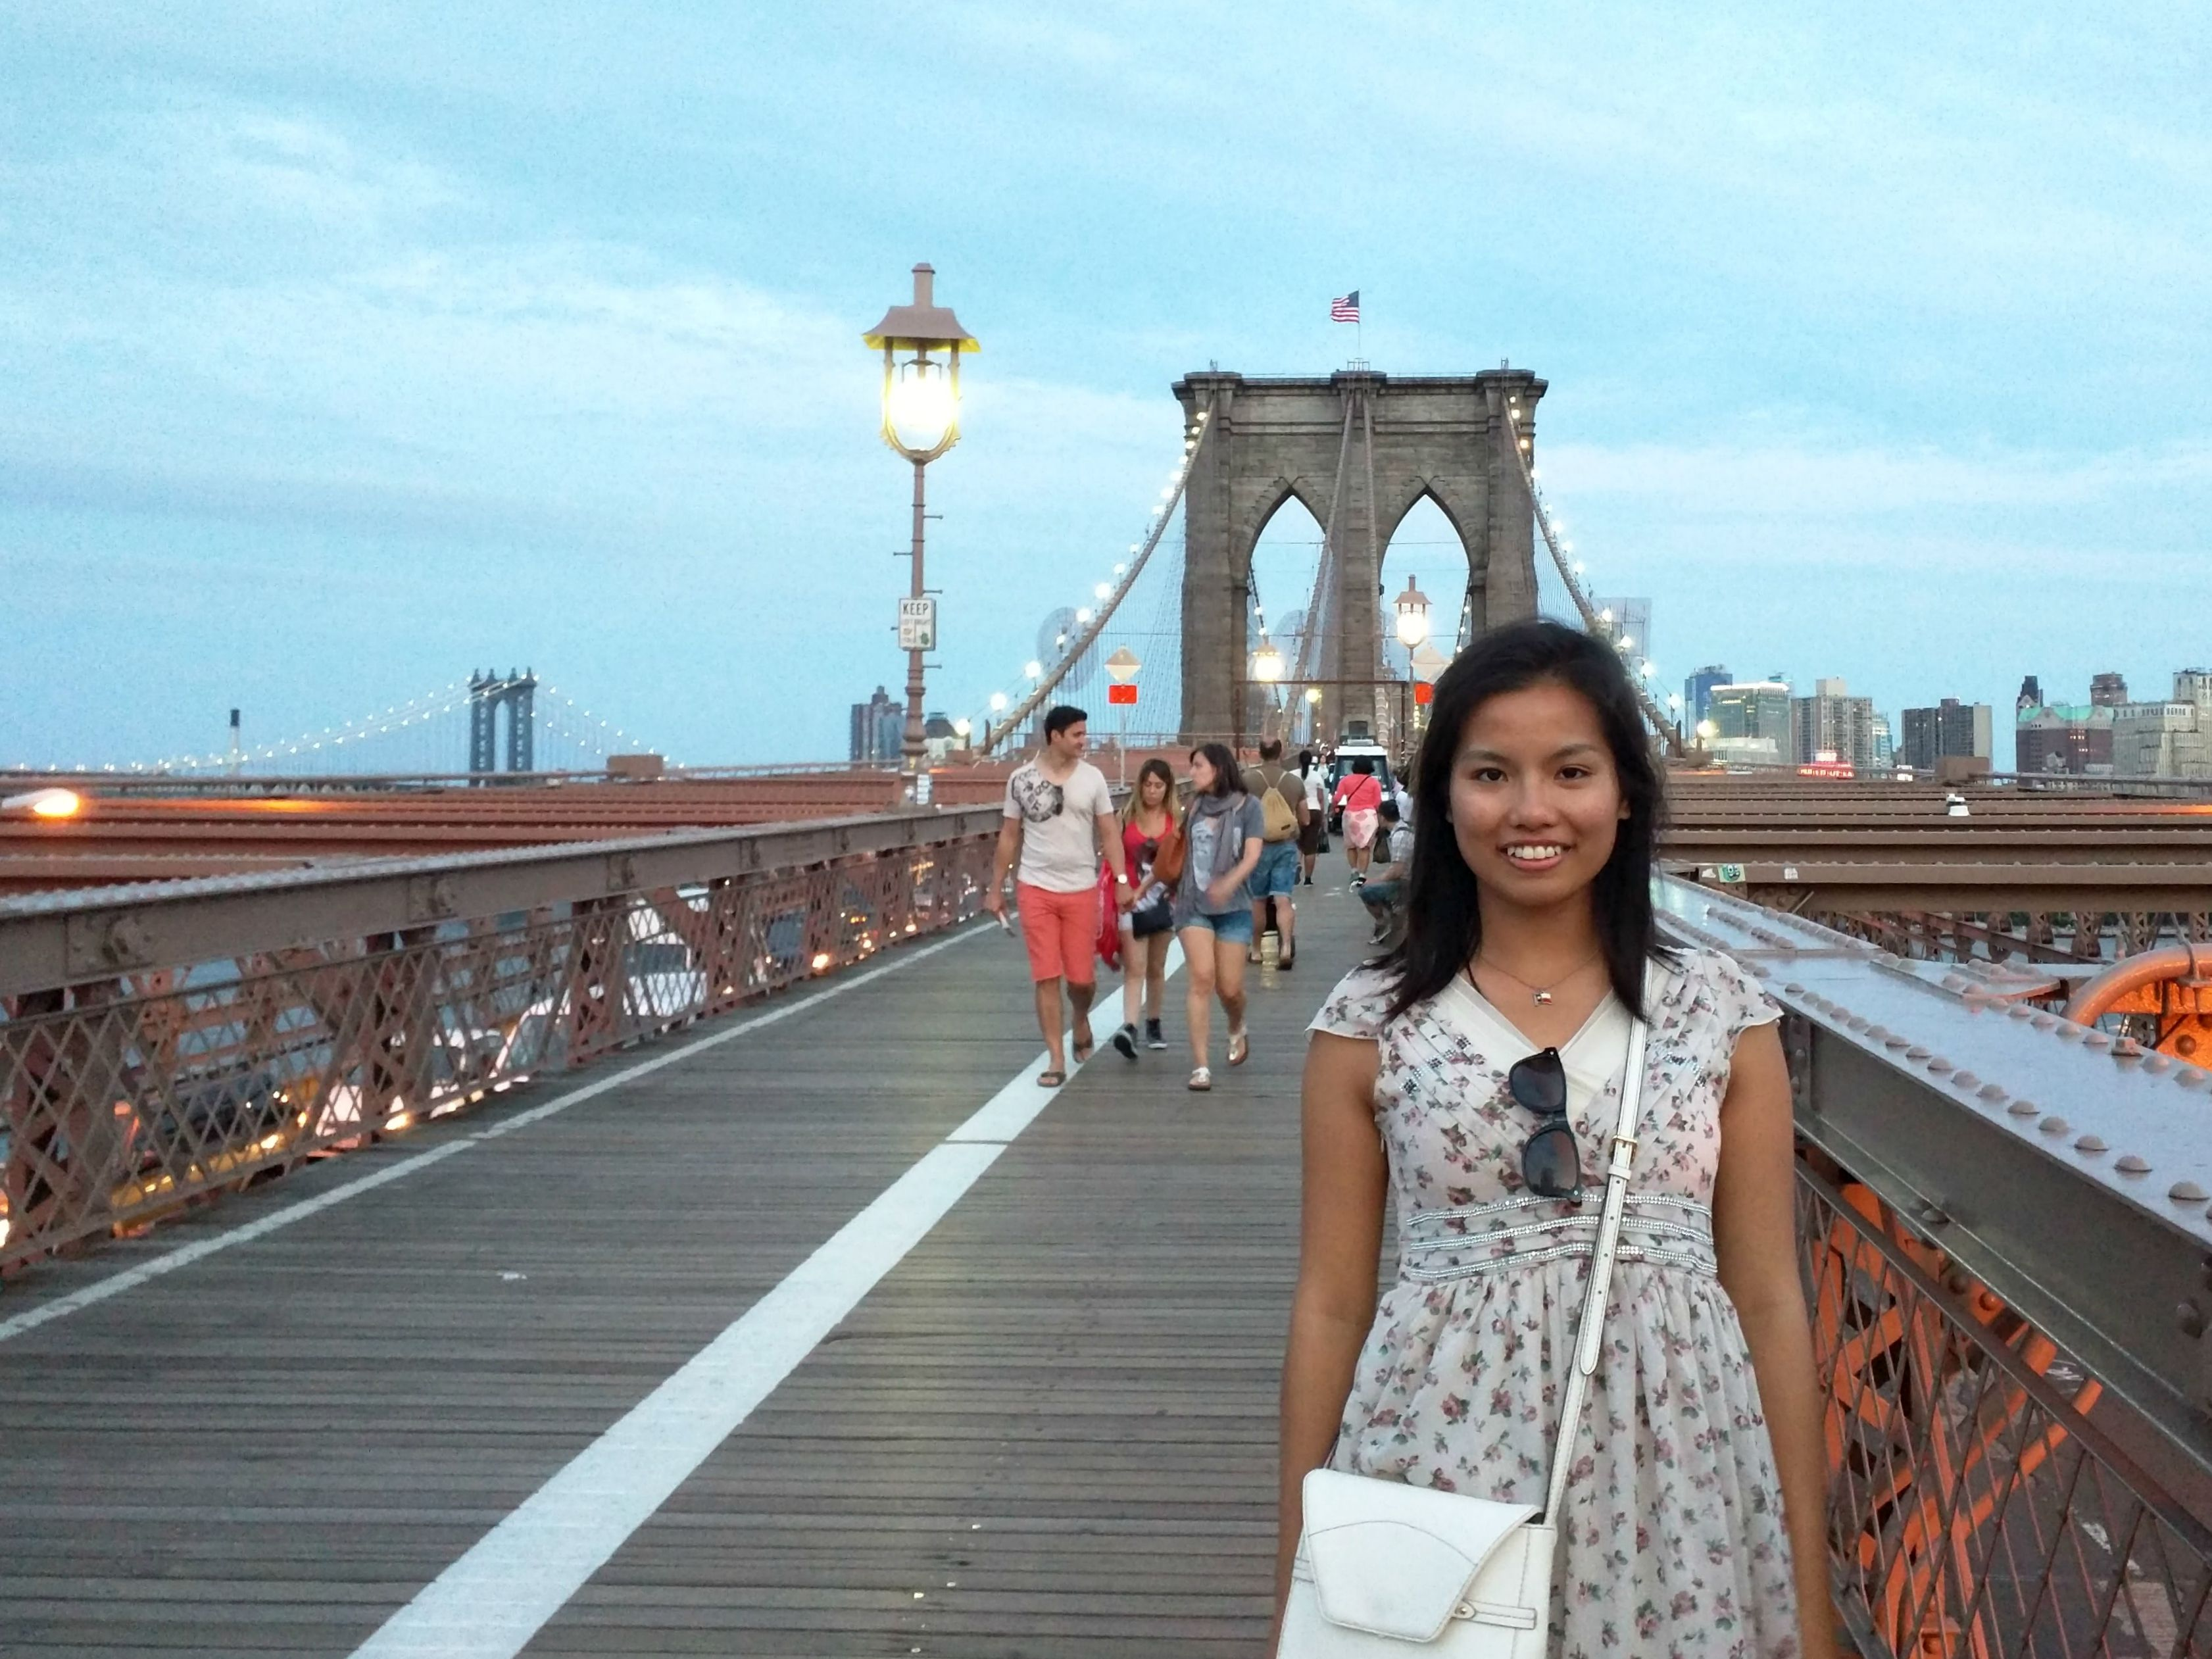 Walking across Brooklyn Bridge